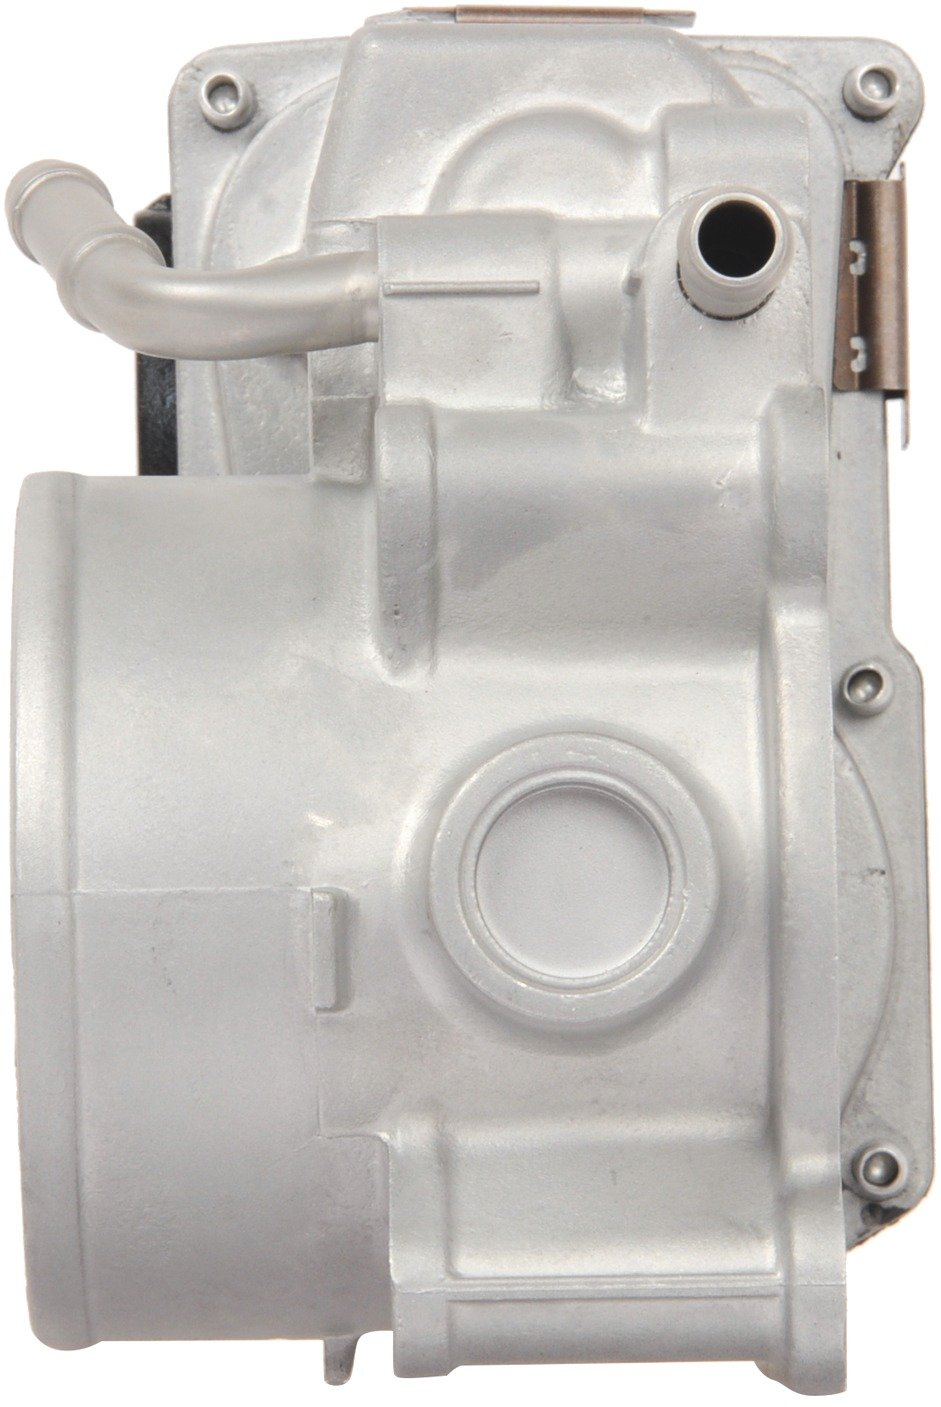 A1 Cardone 67-8012 Remanufactured Throttle Body, 1 Pack by A1 Cardone